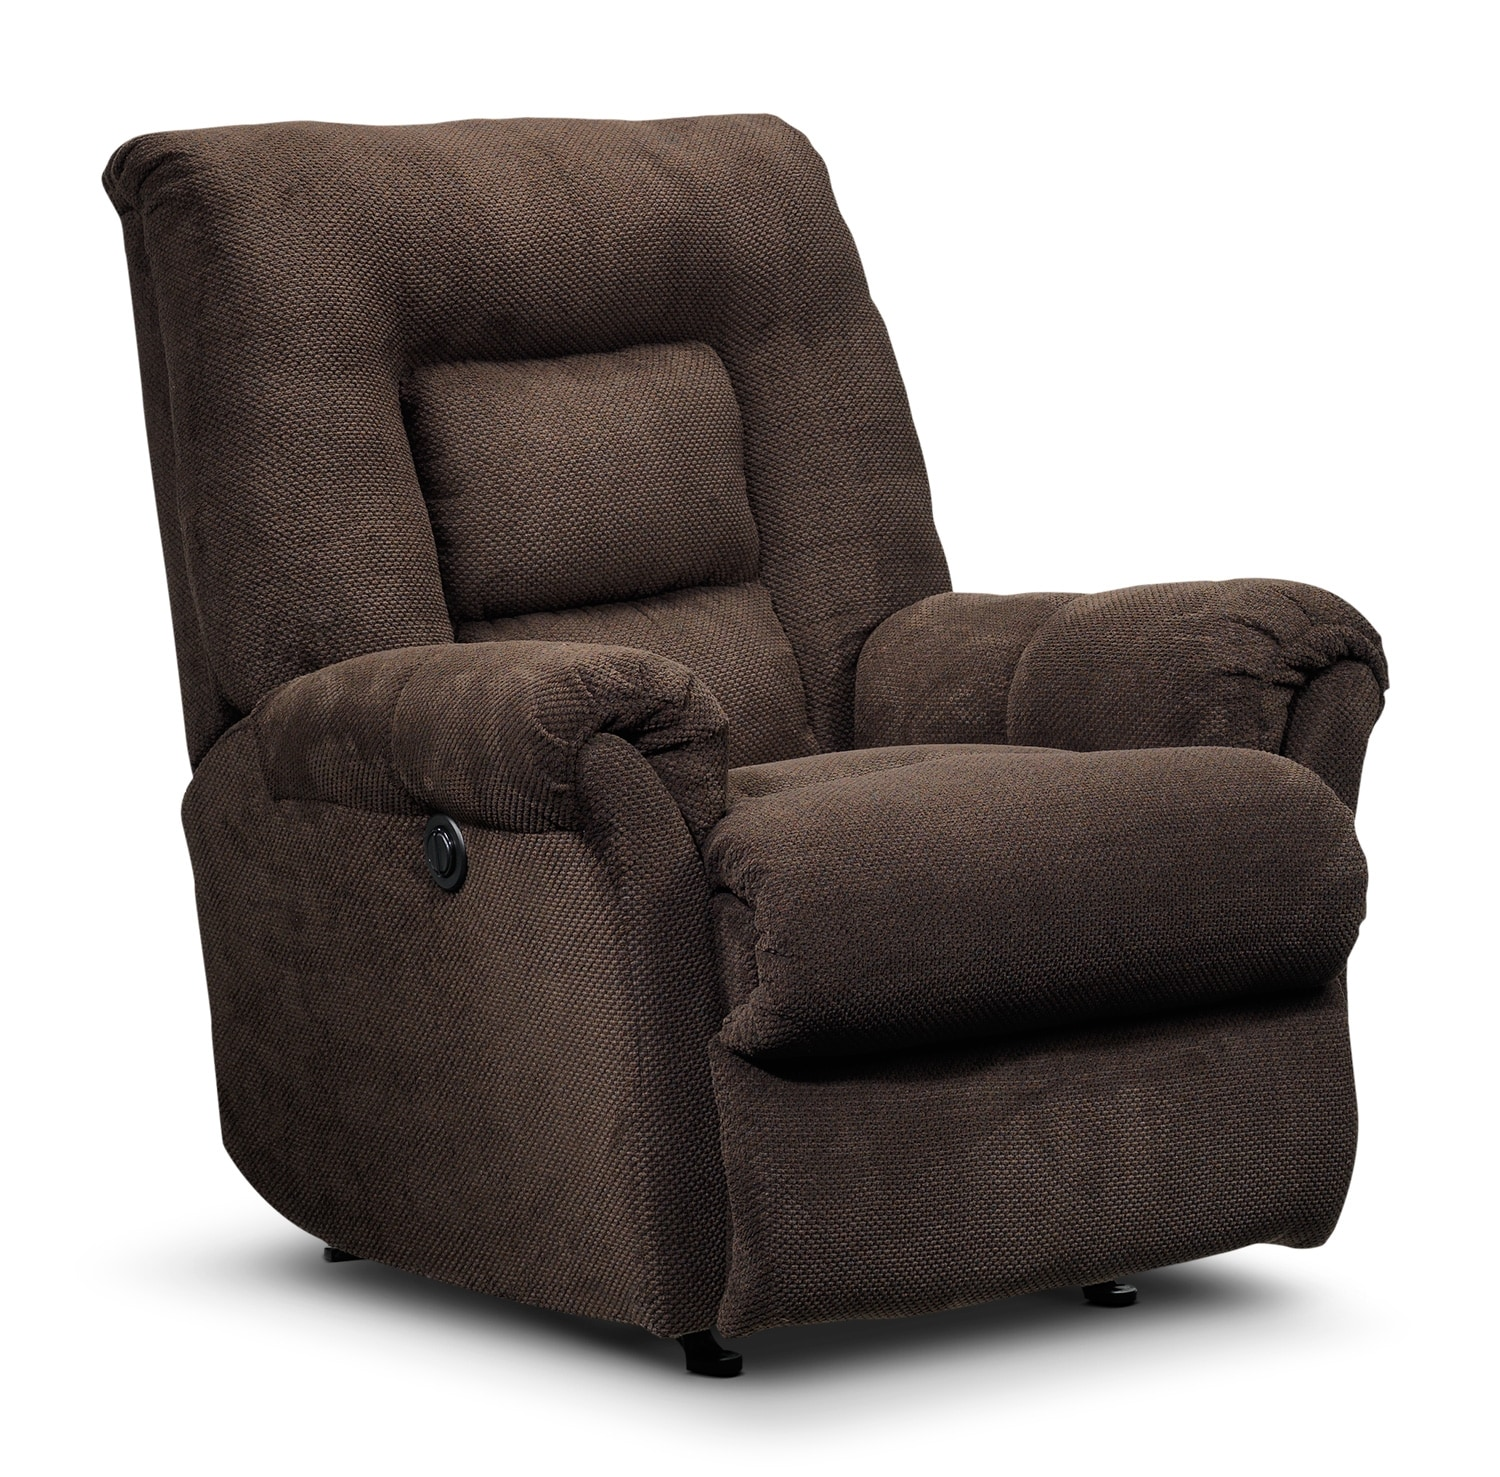 [Schmidt Power Recliner - Chocolate]